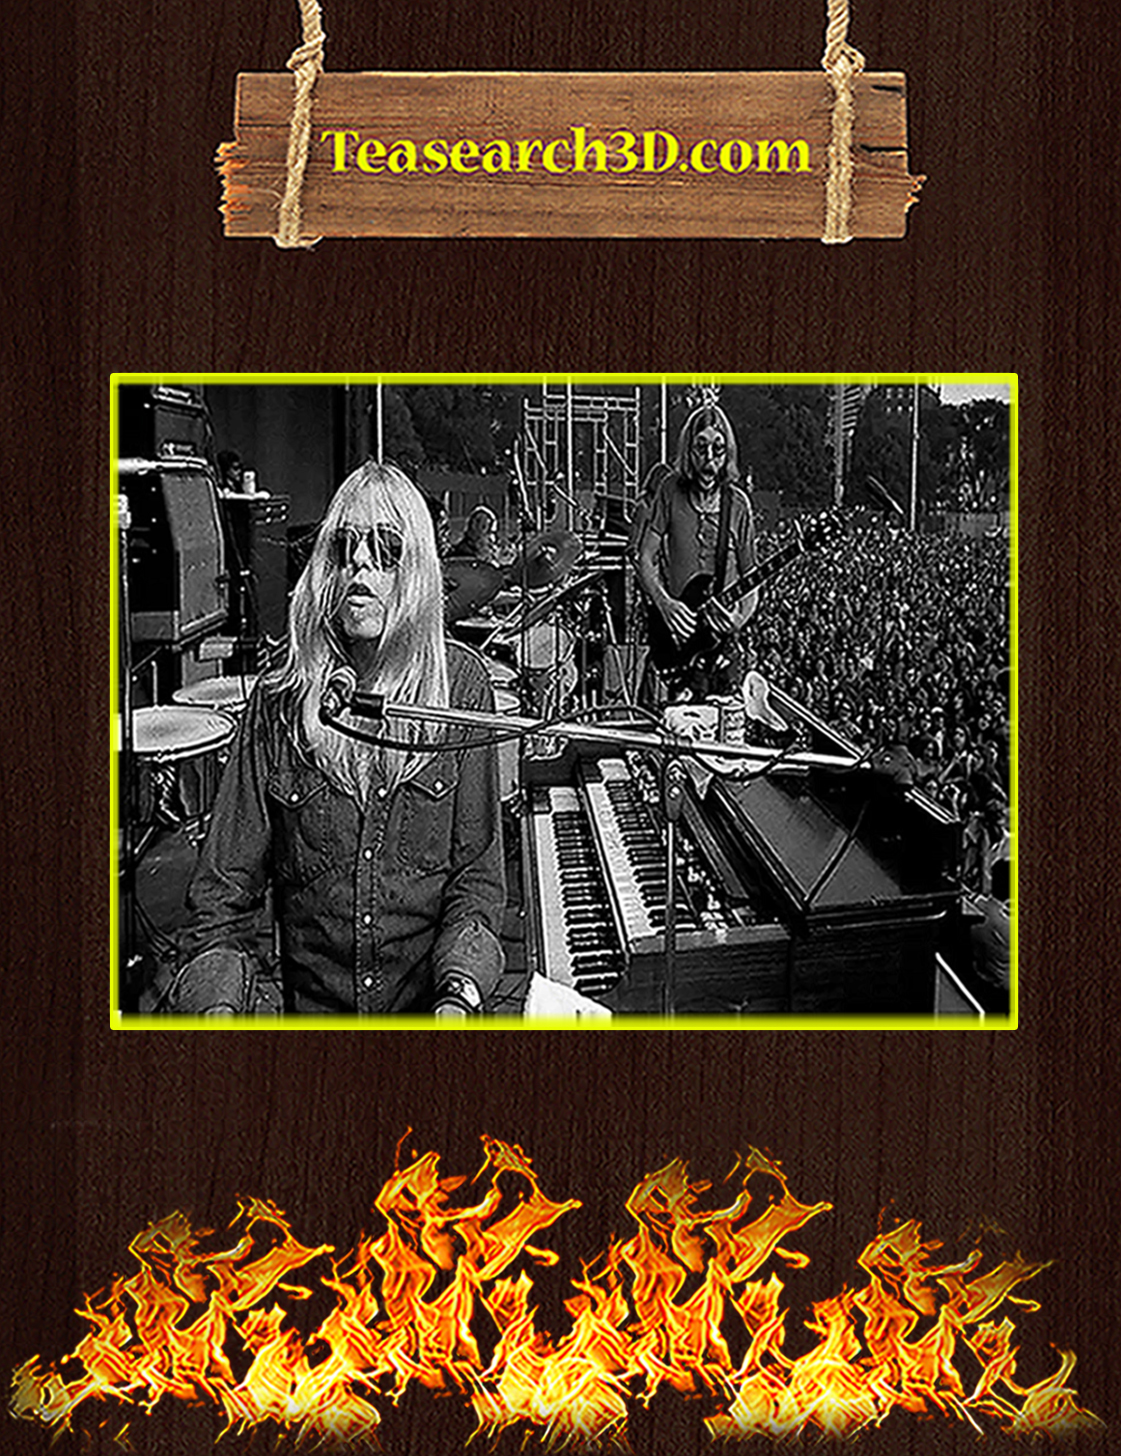 Gregg and Duane Allman Brothers poster A3